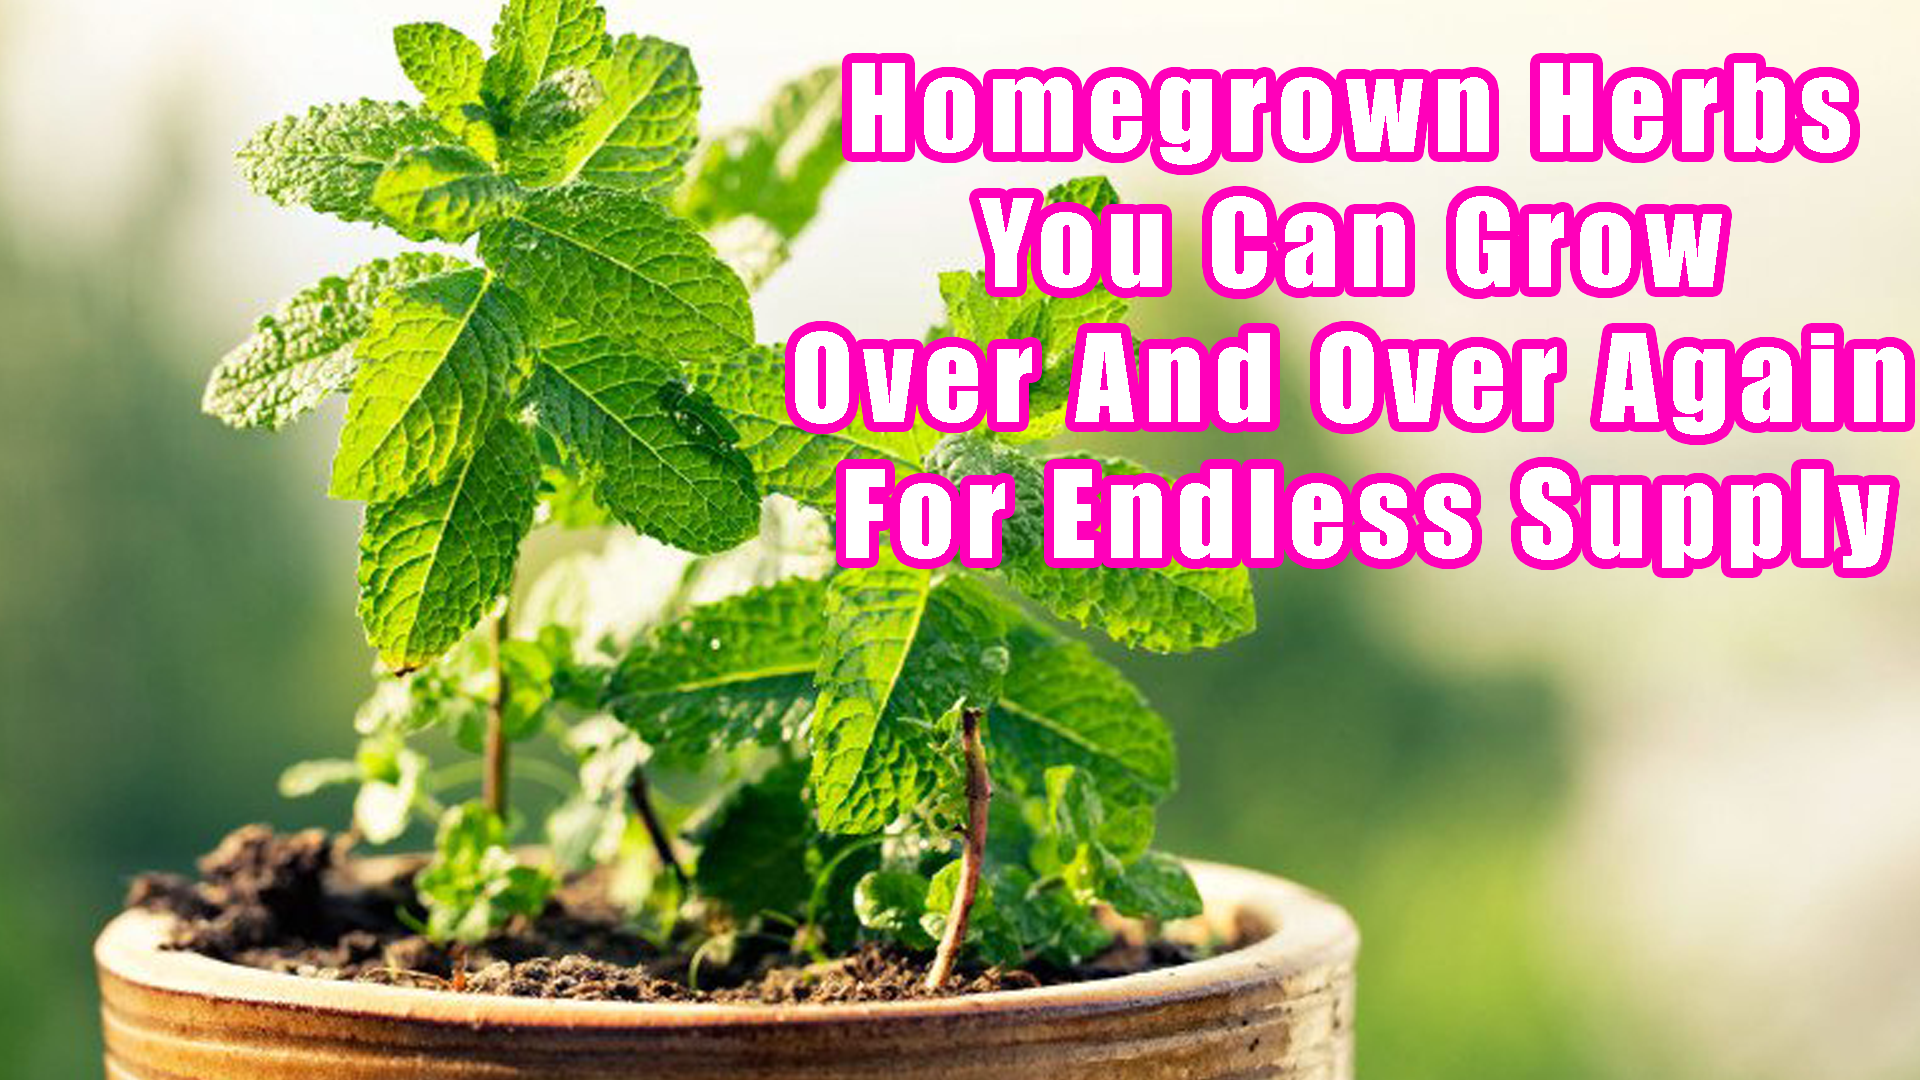 Homegrown Herbs You Can Grow Over And Over Again For Endless Supply